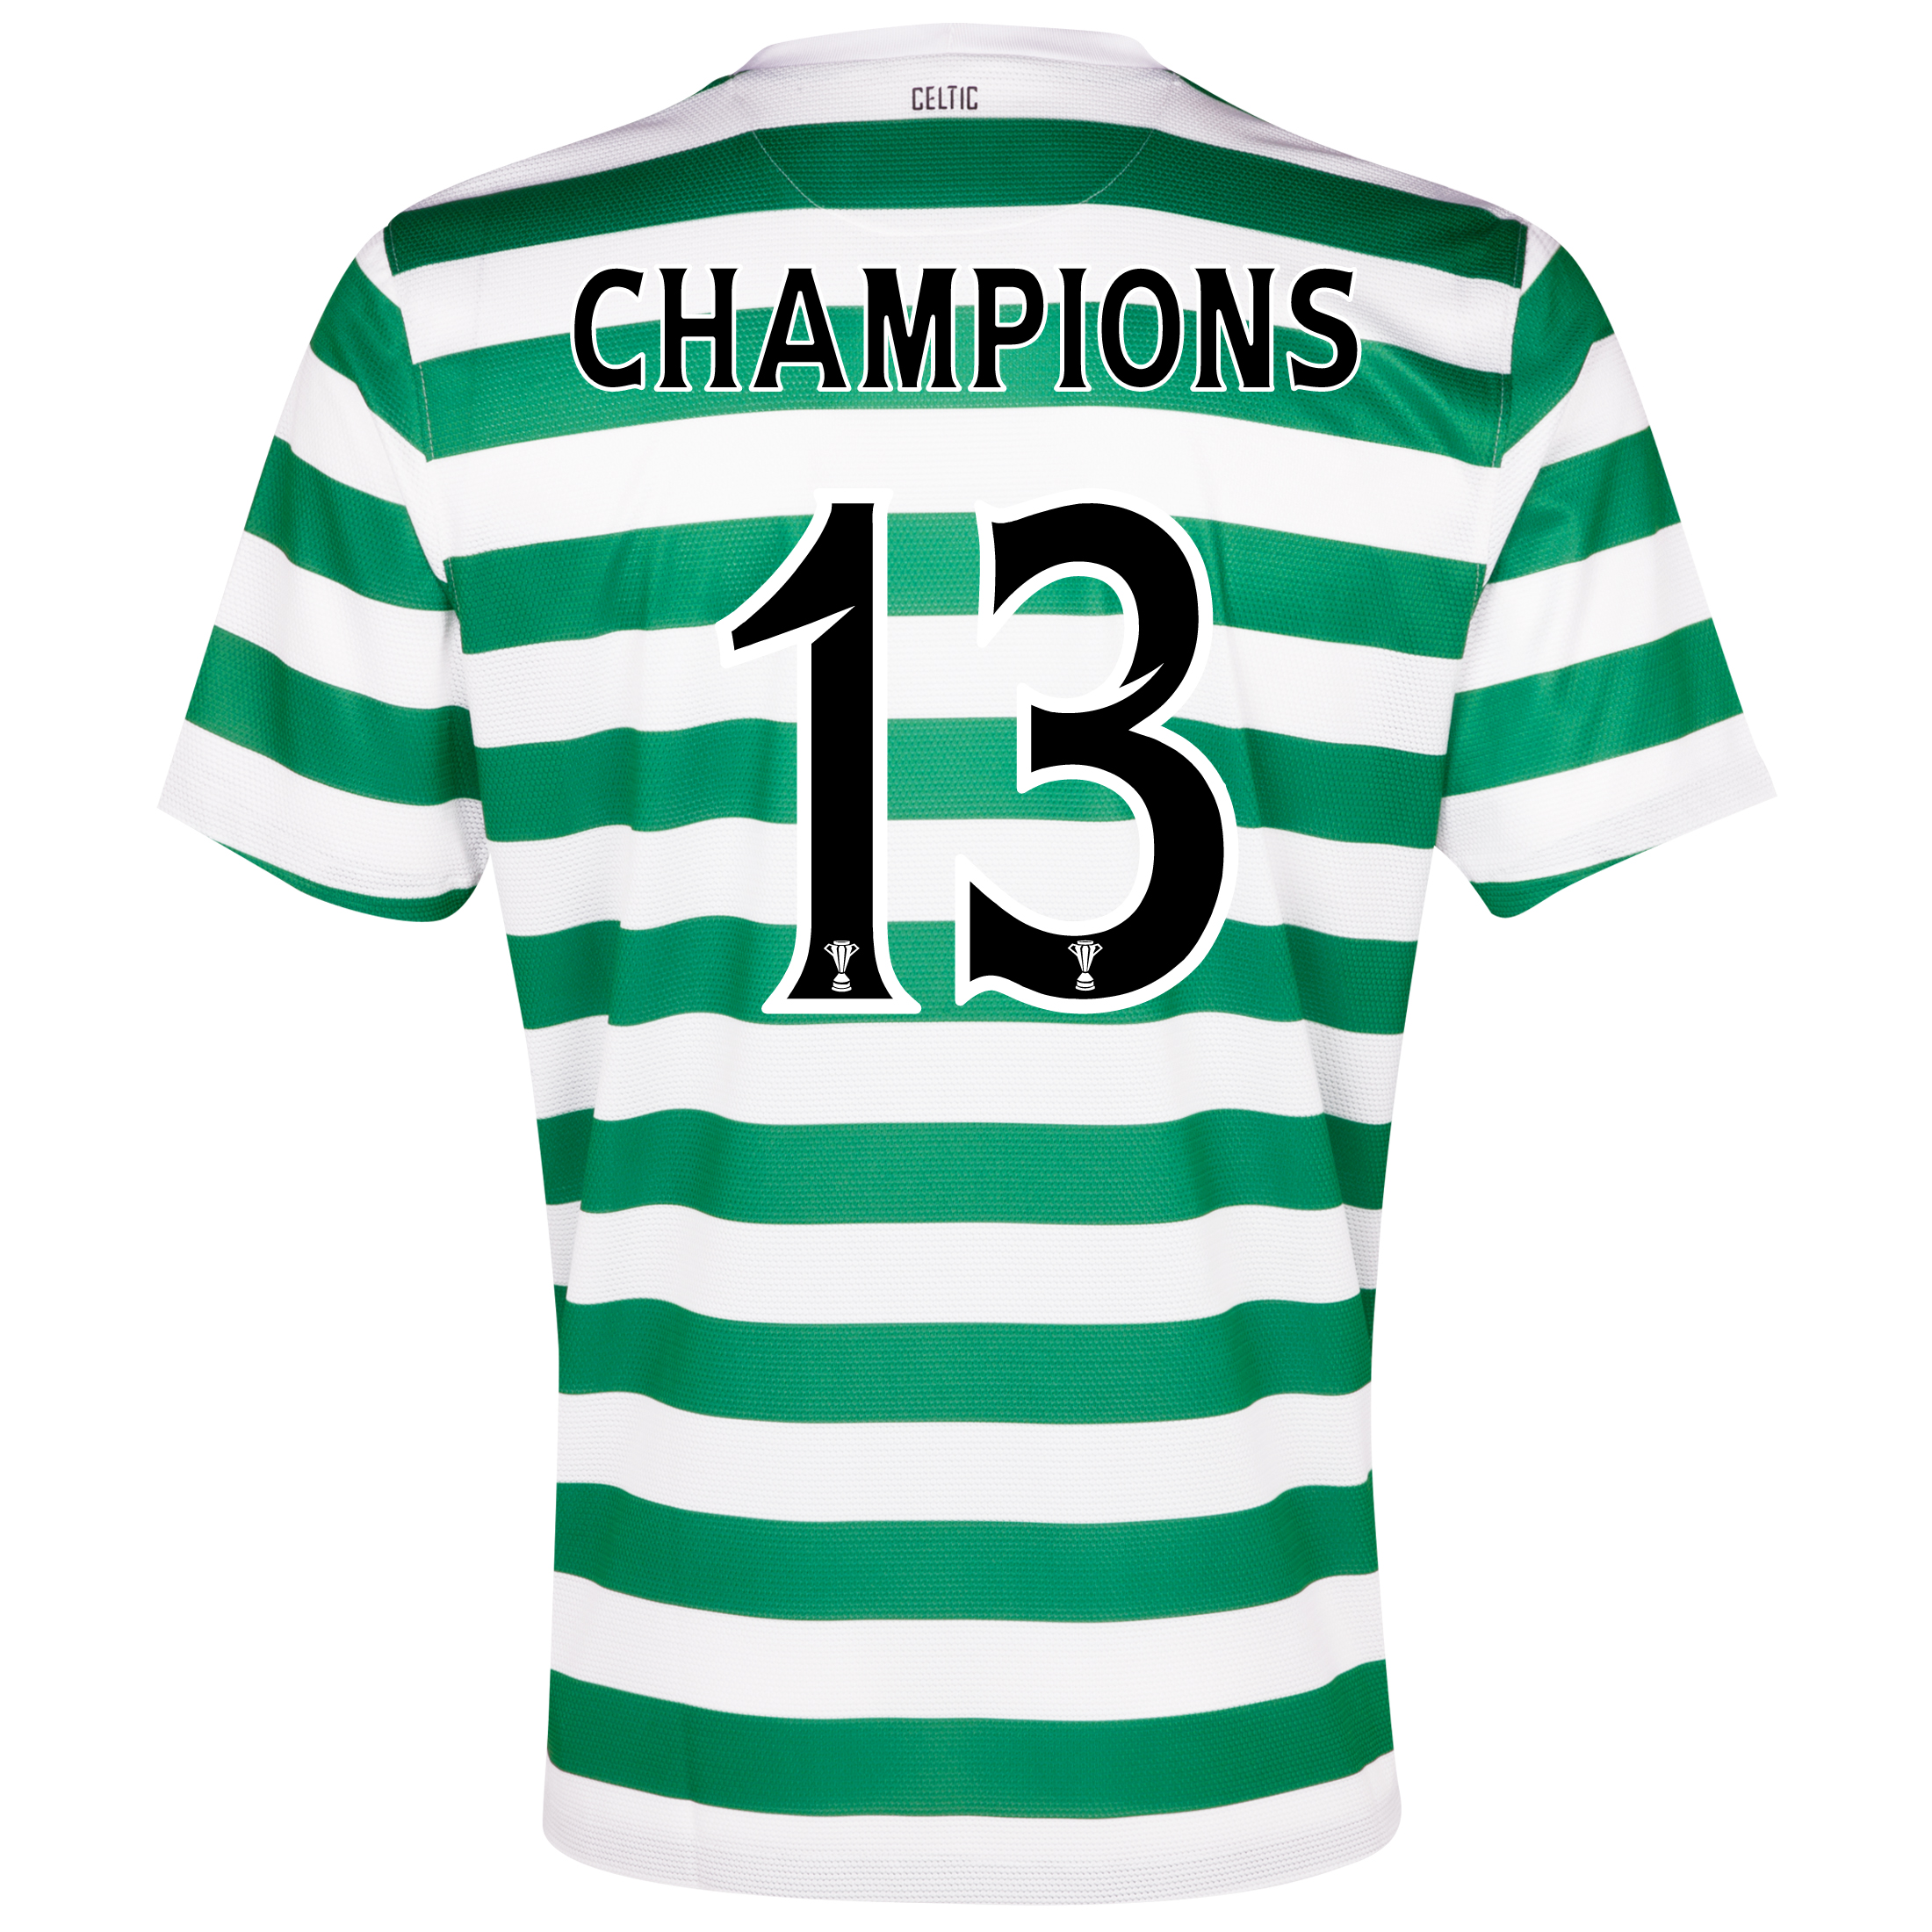 Celtic Home Shirt 2012/13 with Champions 13 printing